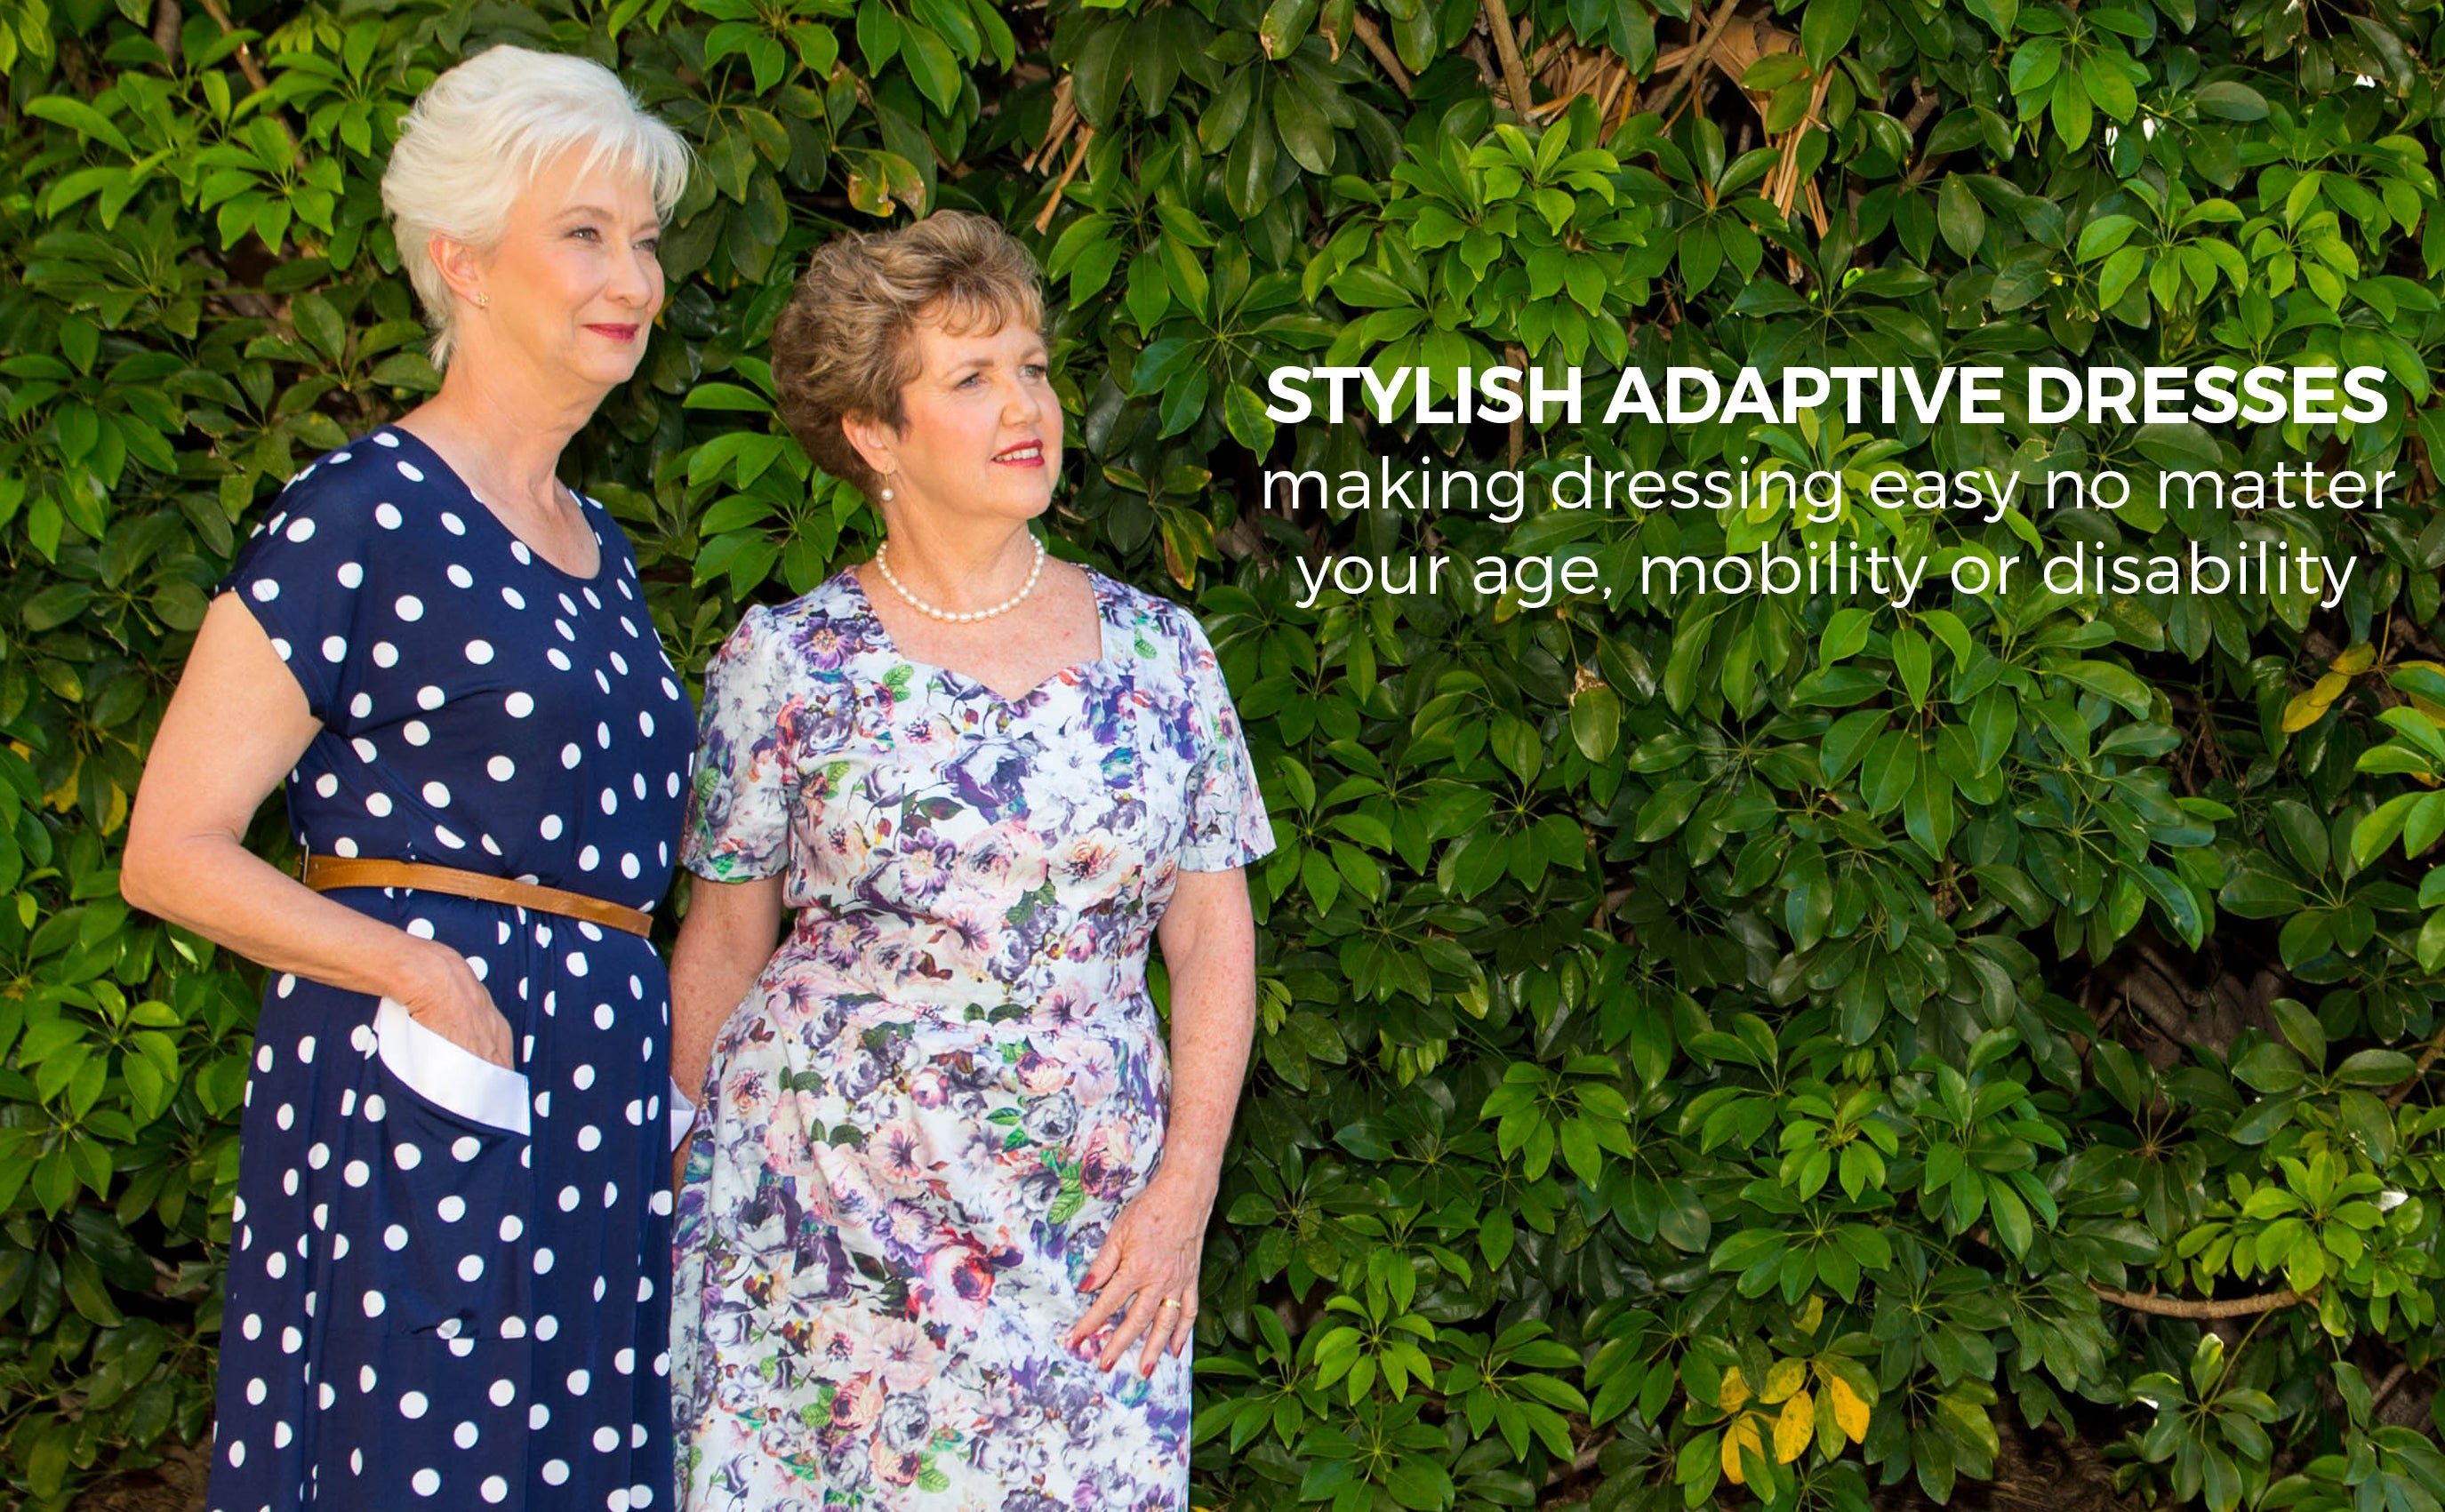 Stylish Adaptive Dresses Australia